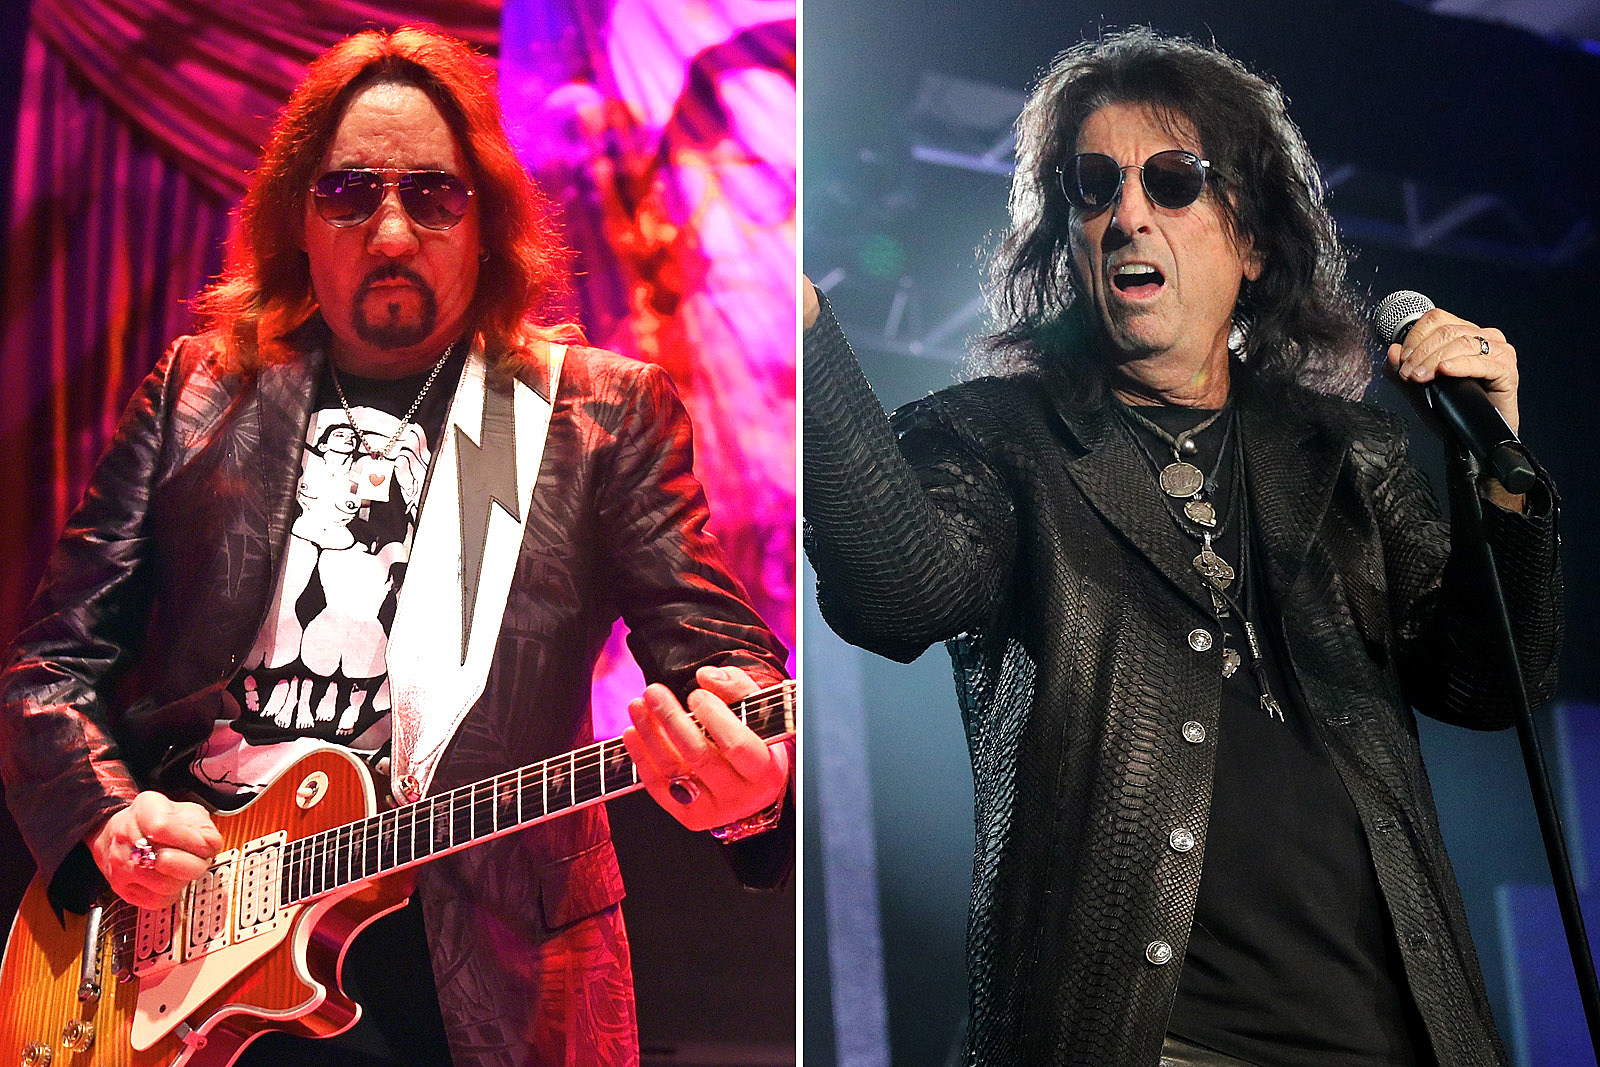 Ace Frehley Tour 2020 Ace Frehley Plans Tour With Alice Cooper